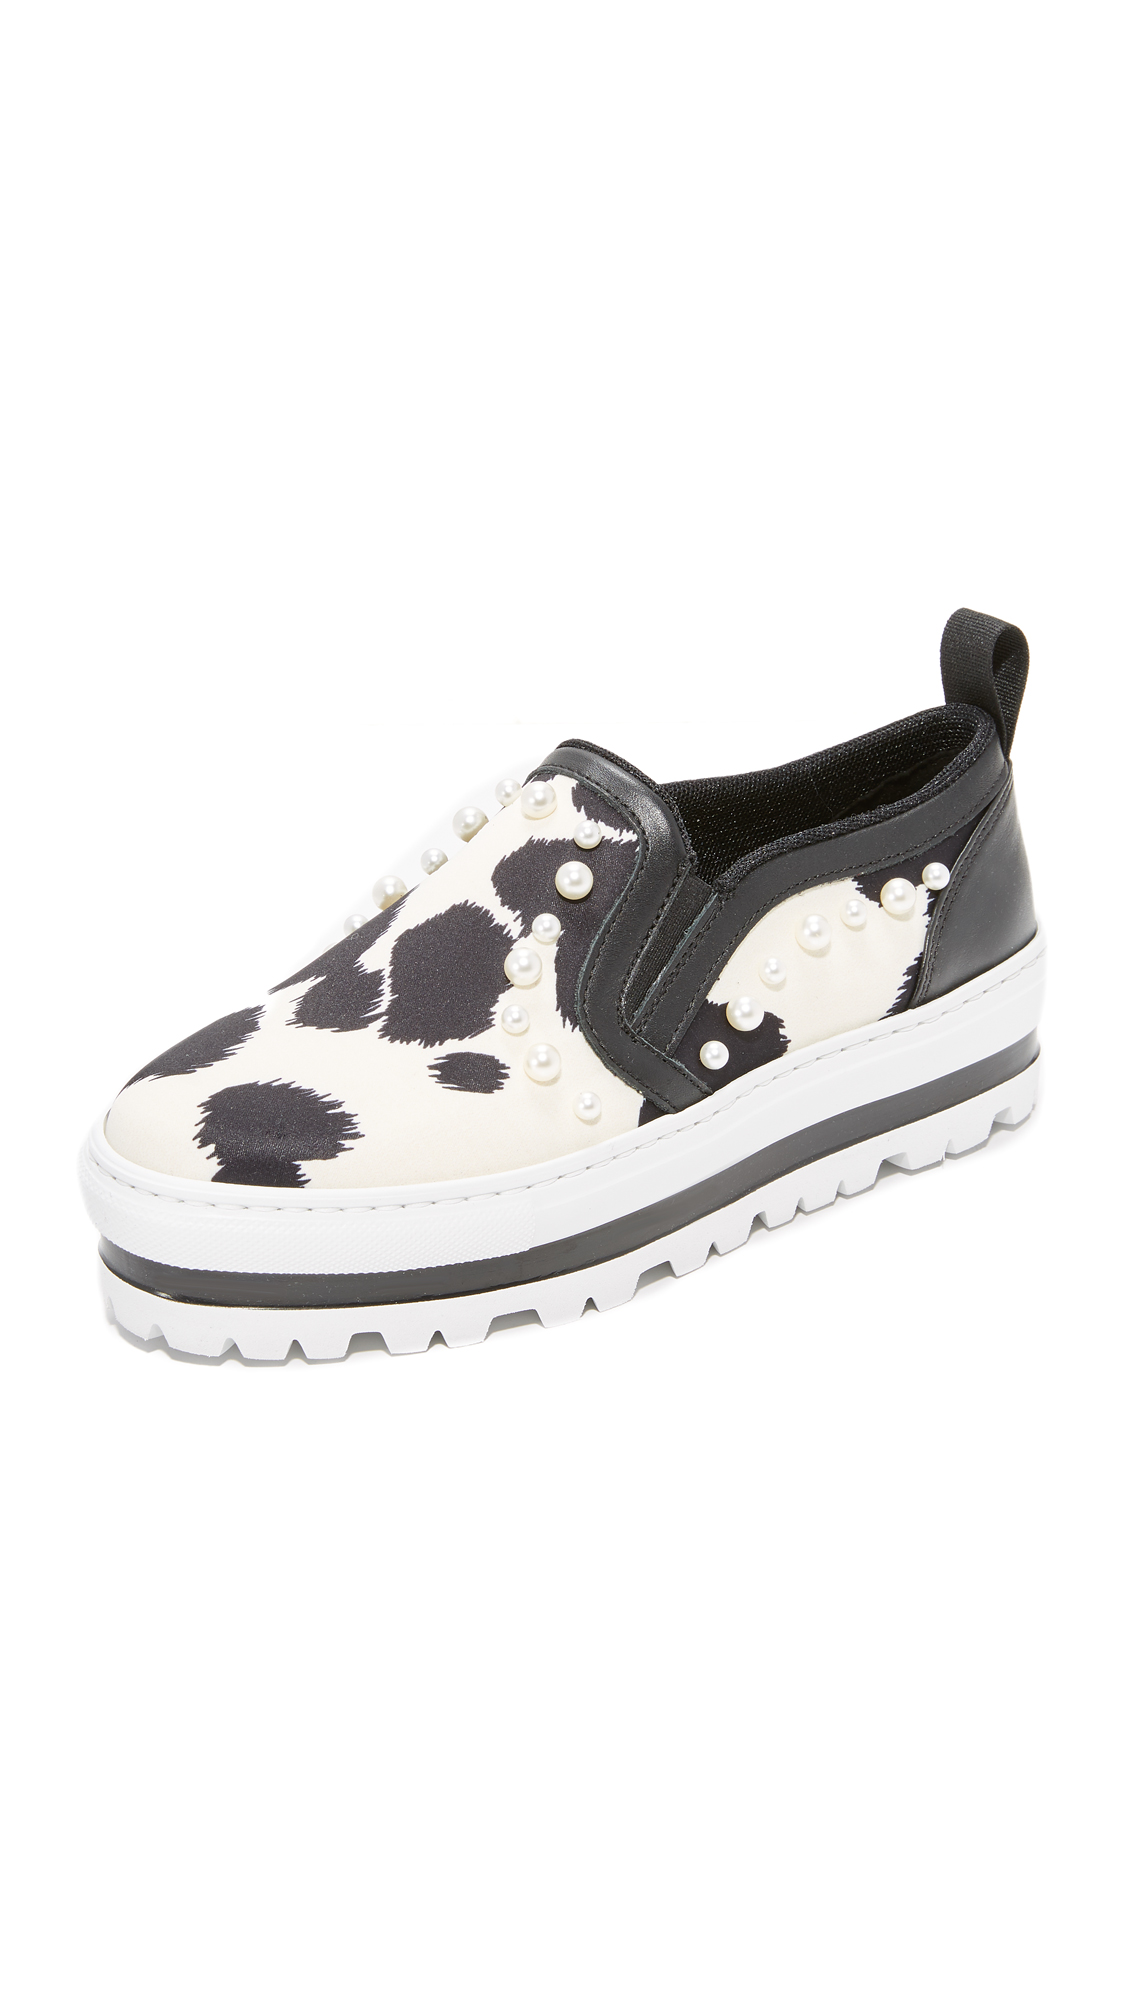 MSGM Wedge Slip On Sneakers - White/Black